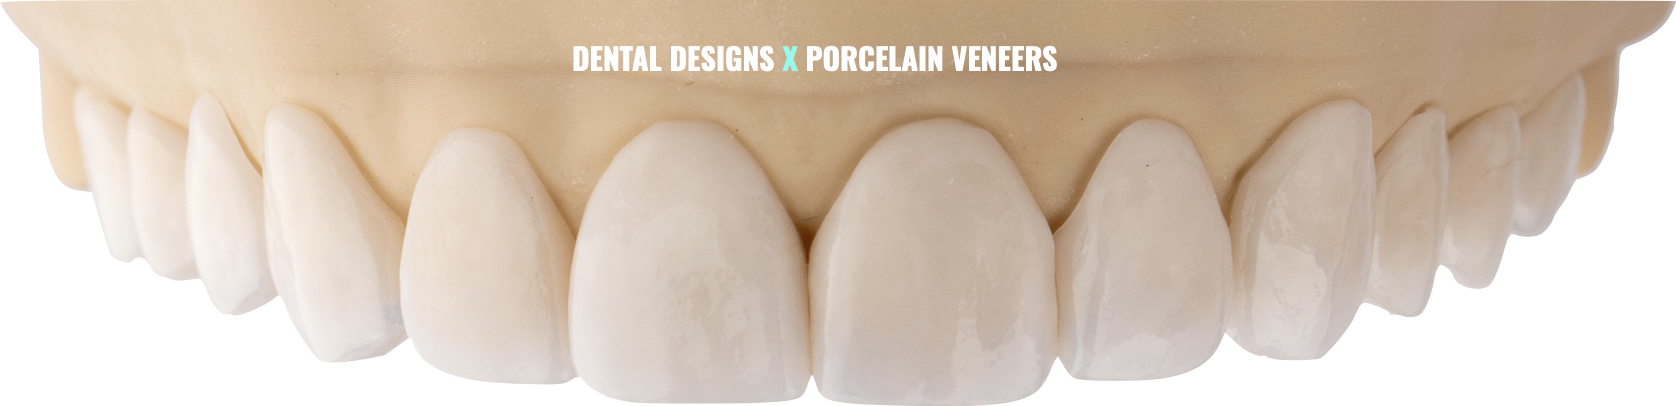 Dental Porcelain Veneers at Dental Designs Clinic